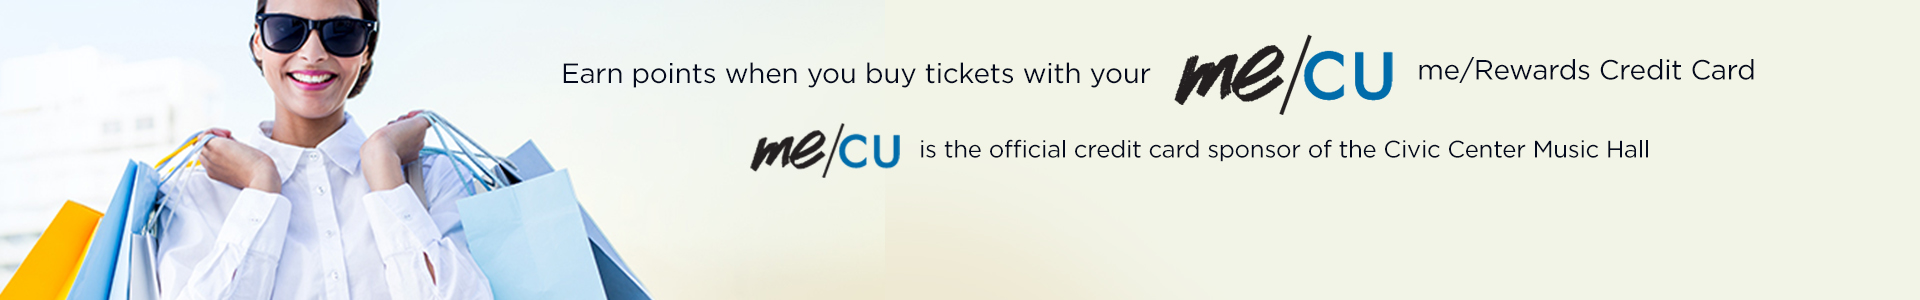 Earn points when you buy tickets with your me/cu me/rewards credit card. Me/cu is the official credit card sponsor of the Civic Center Music Hall.